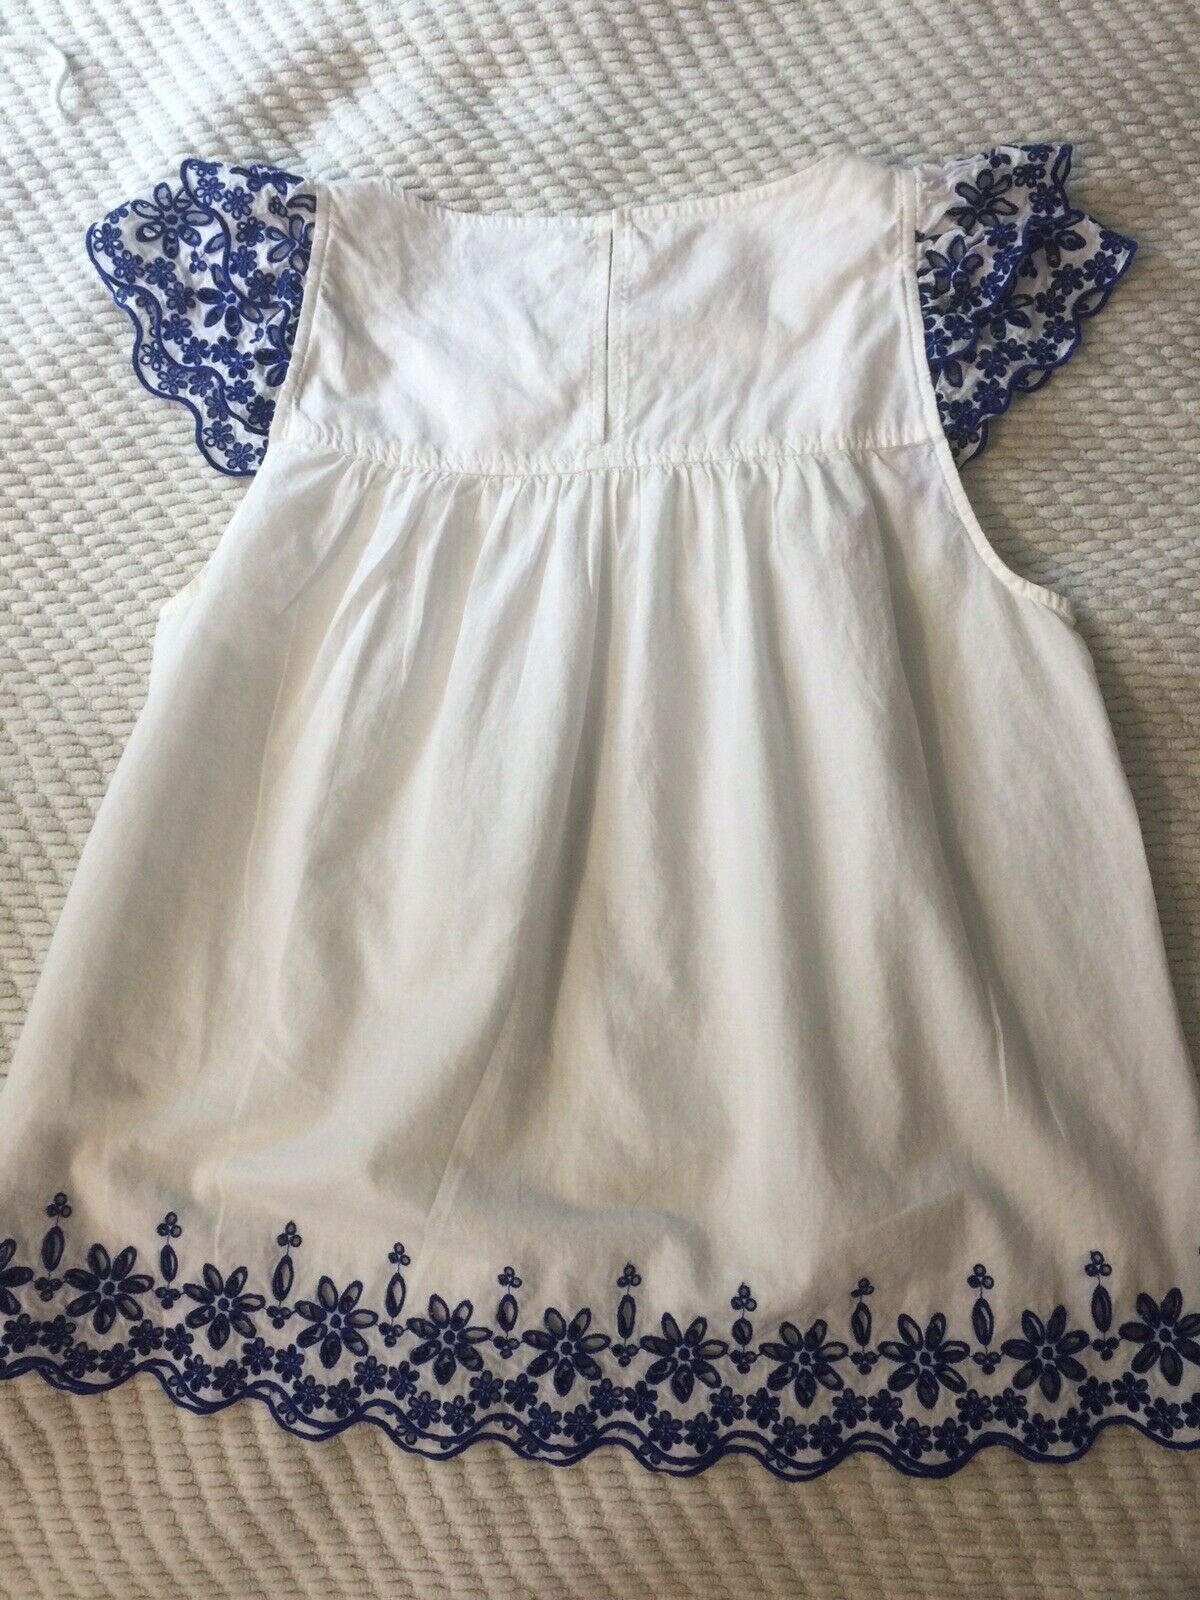 Madewell White Cotton Top Blue Eyelet Sleeves 4 - image 6